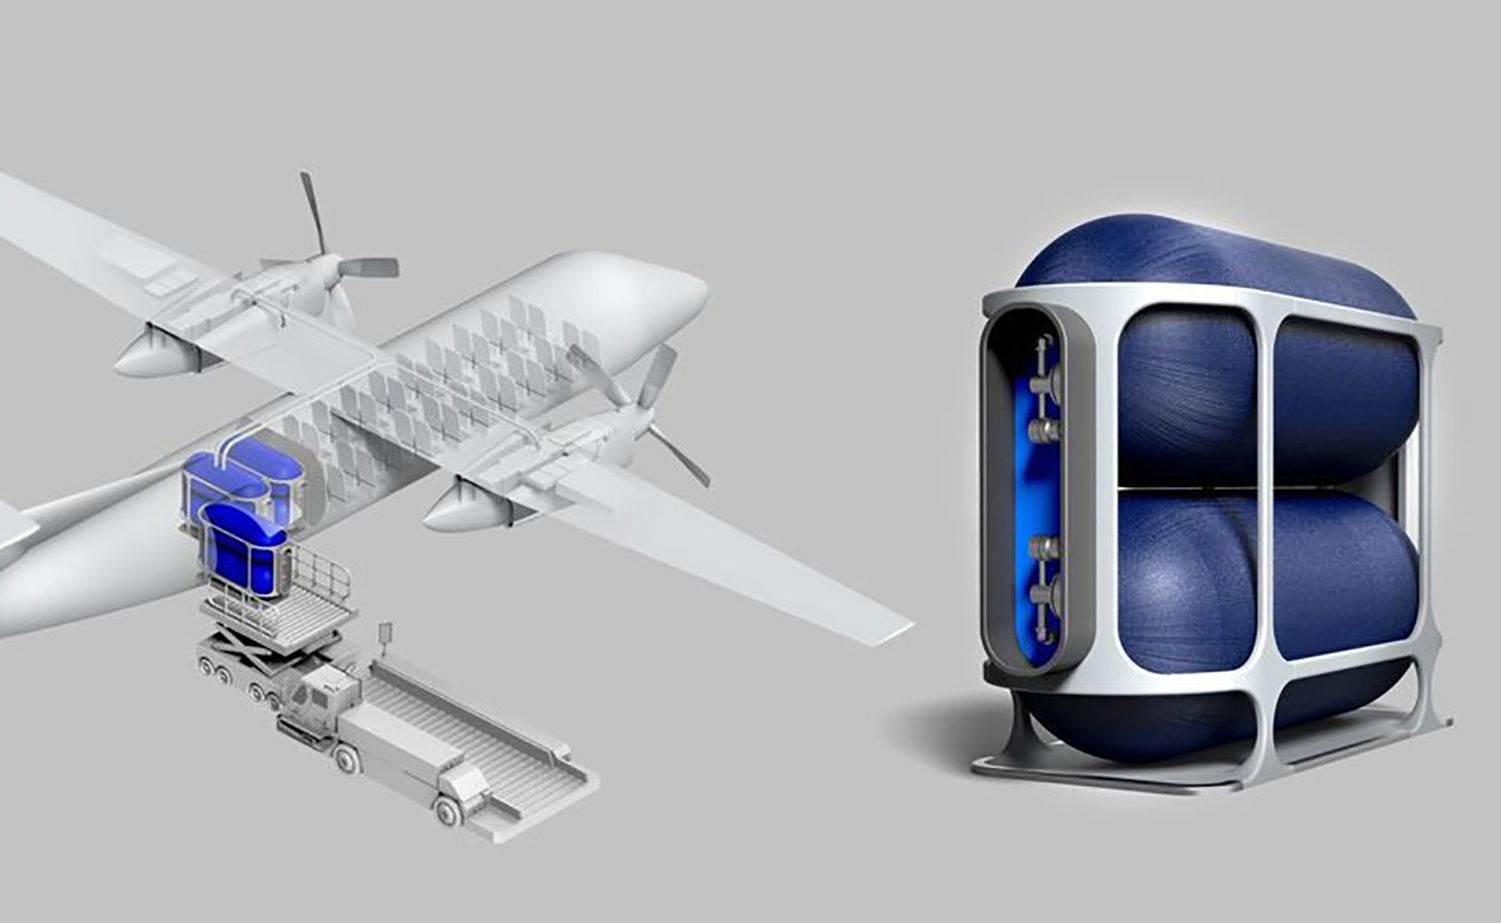 fuel-cell-airplane